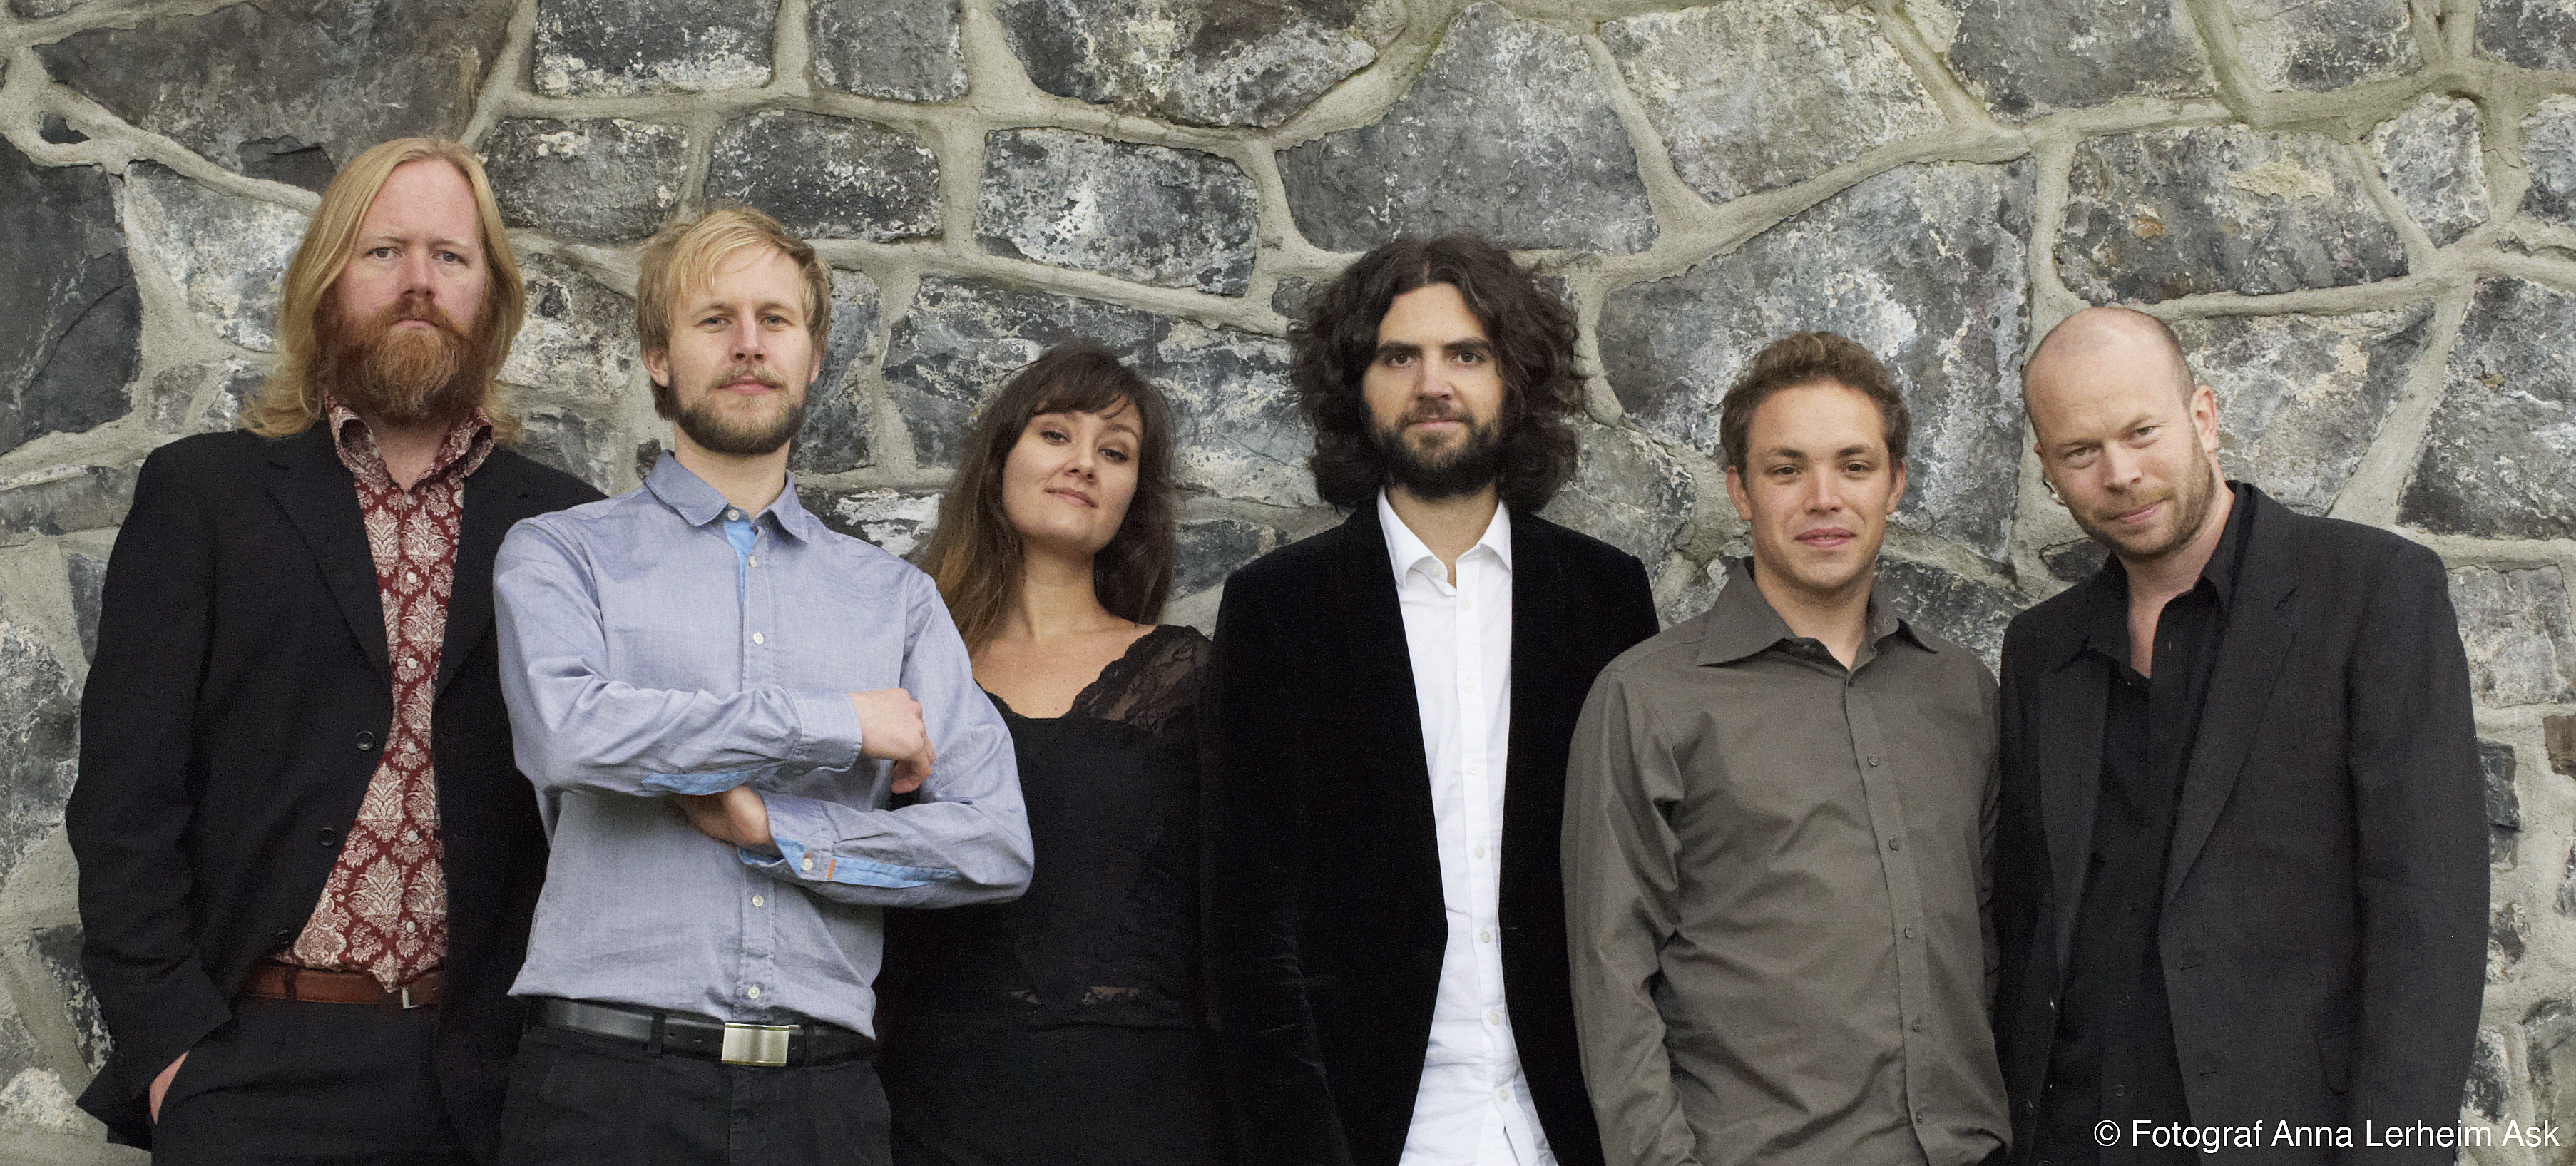 Christian Wallumrød Ensemble